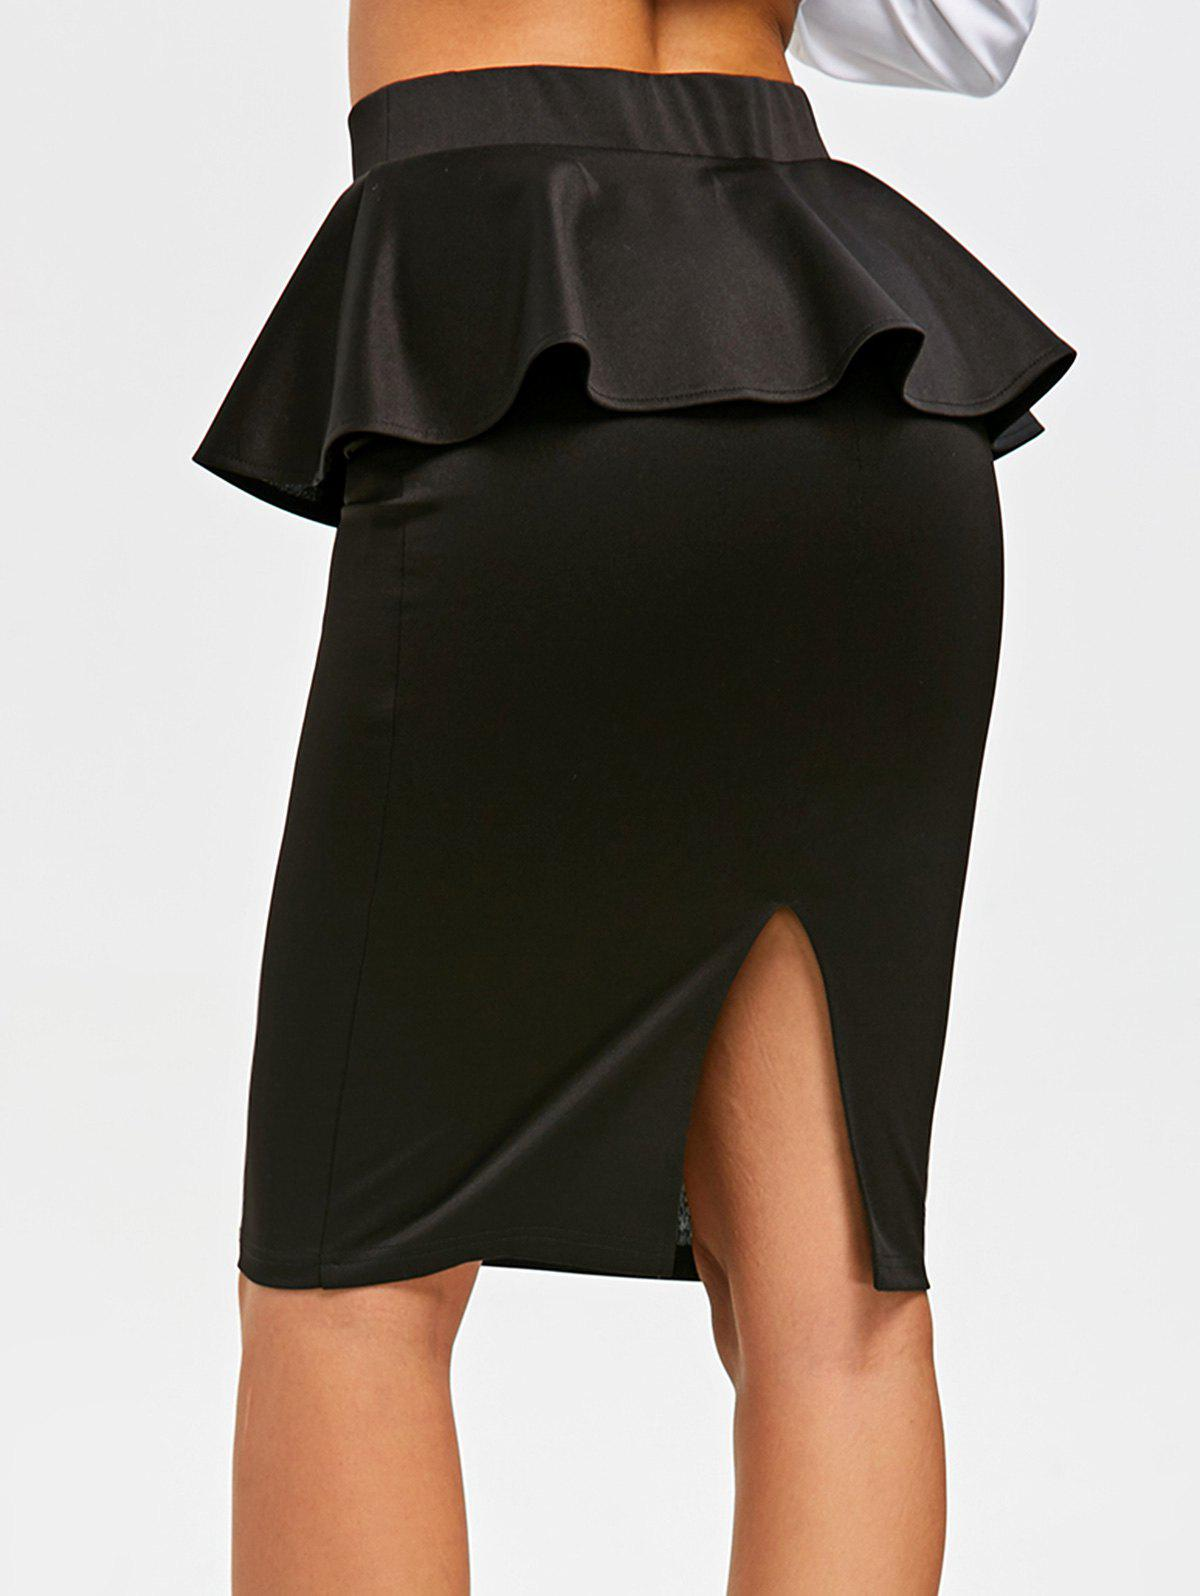 High Waist Peplum Pencil Skirt - BLACK 2XL